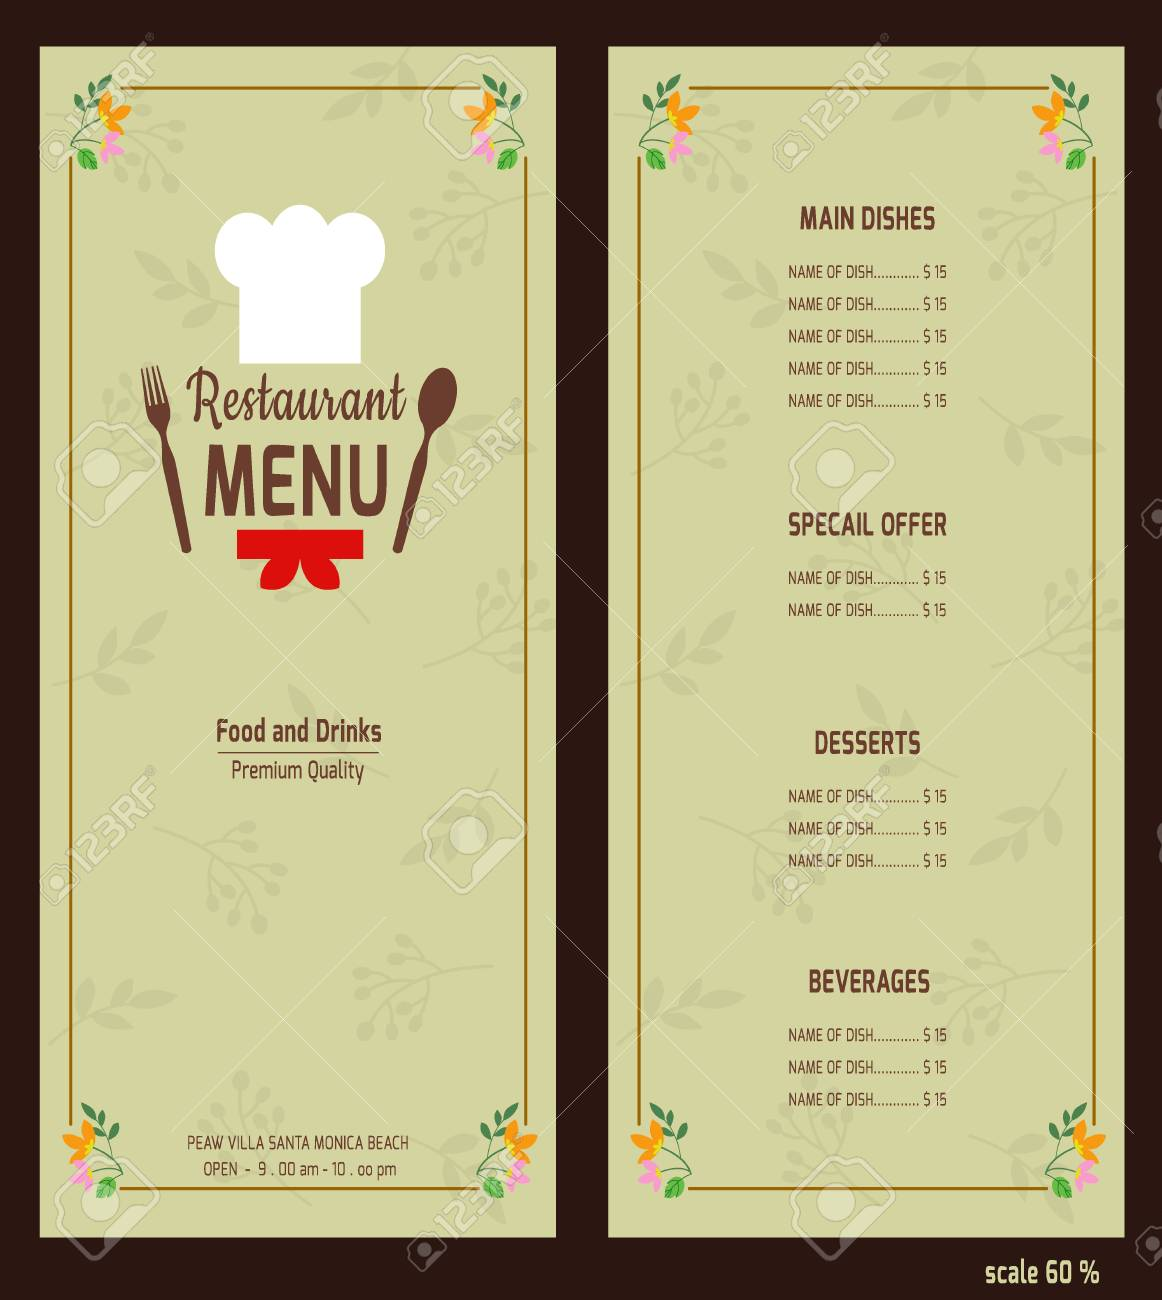 Restaurant Menu Design Template Vector Royalty Free Cliparts Vectors And Stock Illustration Image 37361988